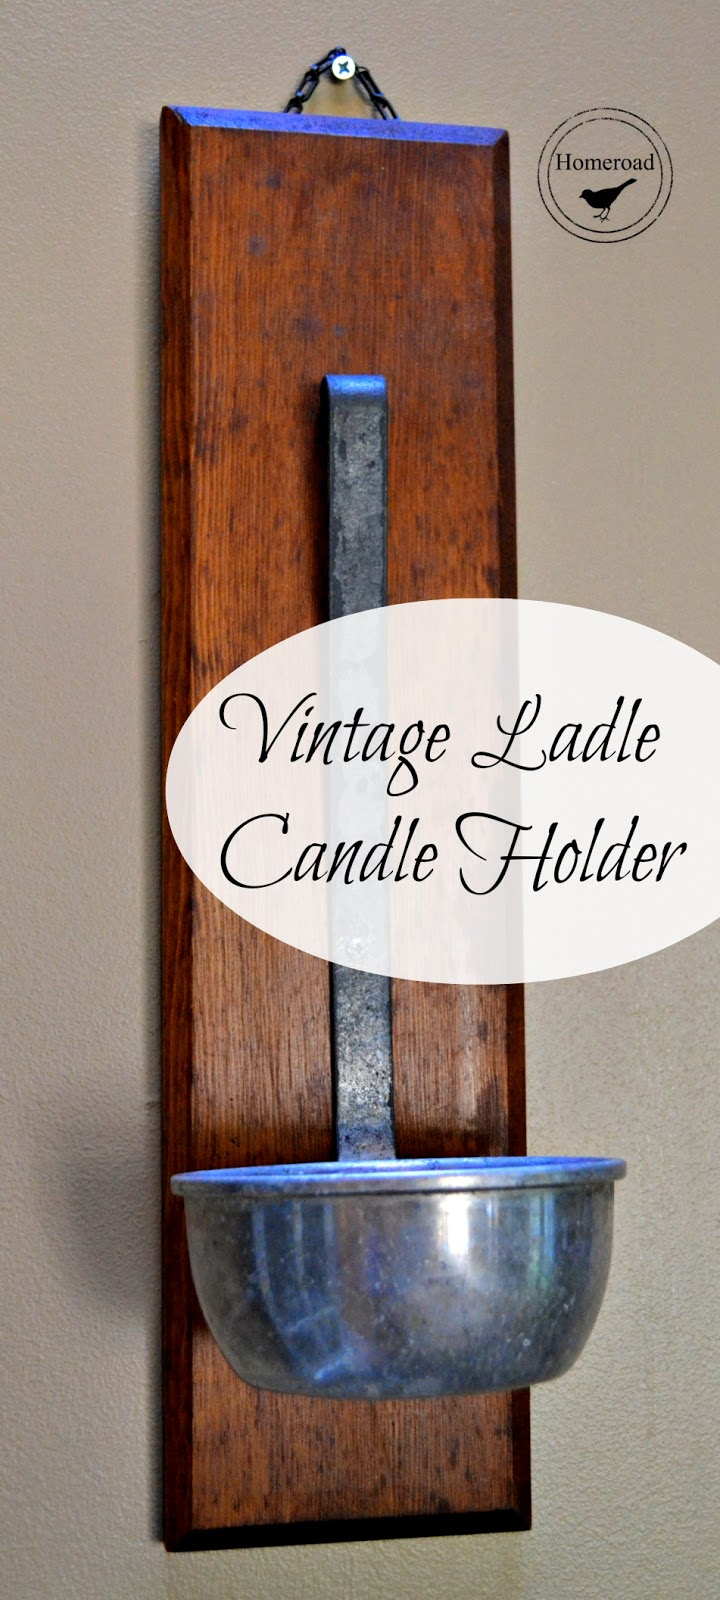 vintage-ladle-candle-holder www.homeroad.net